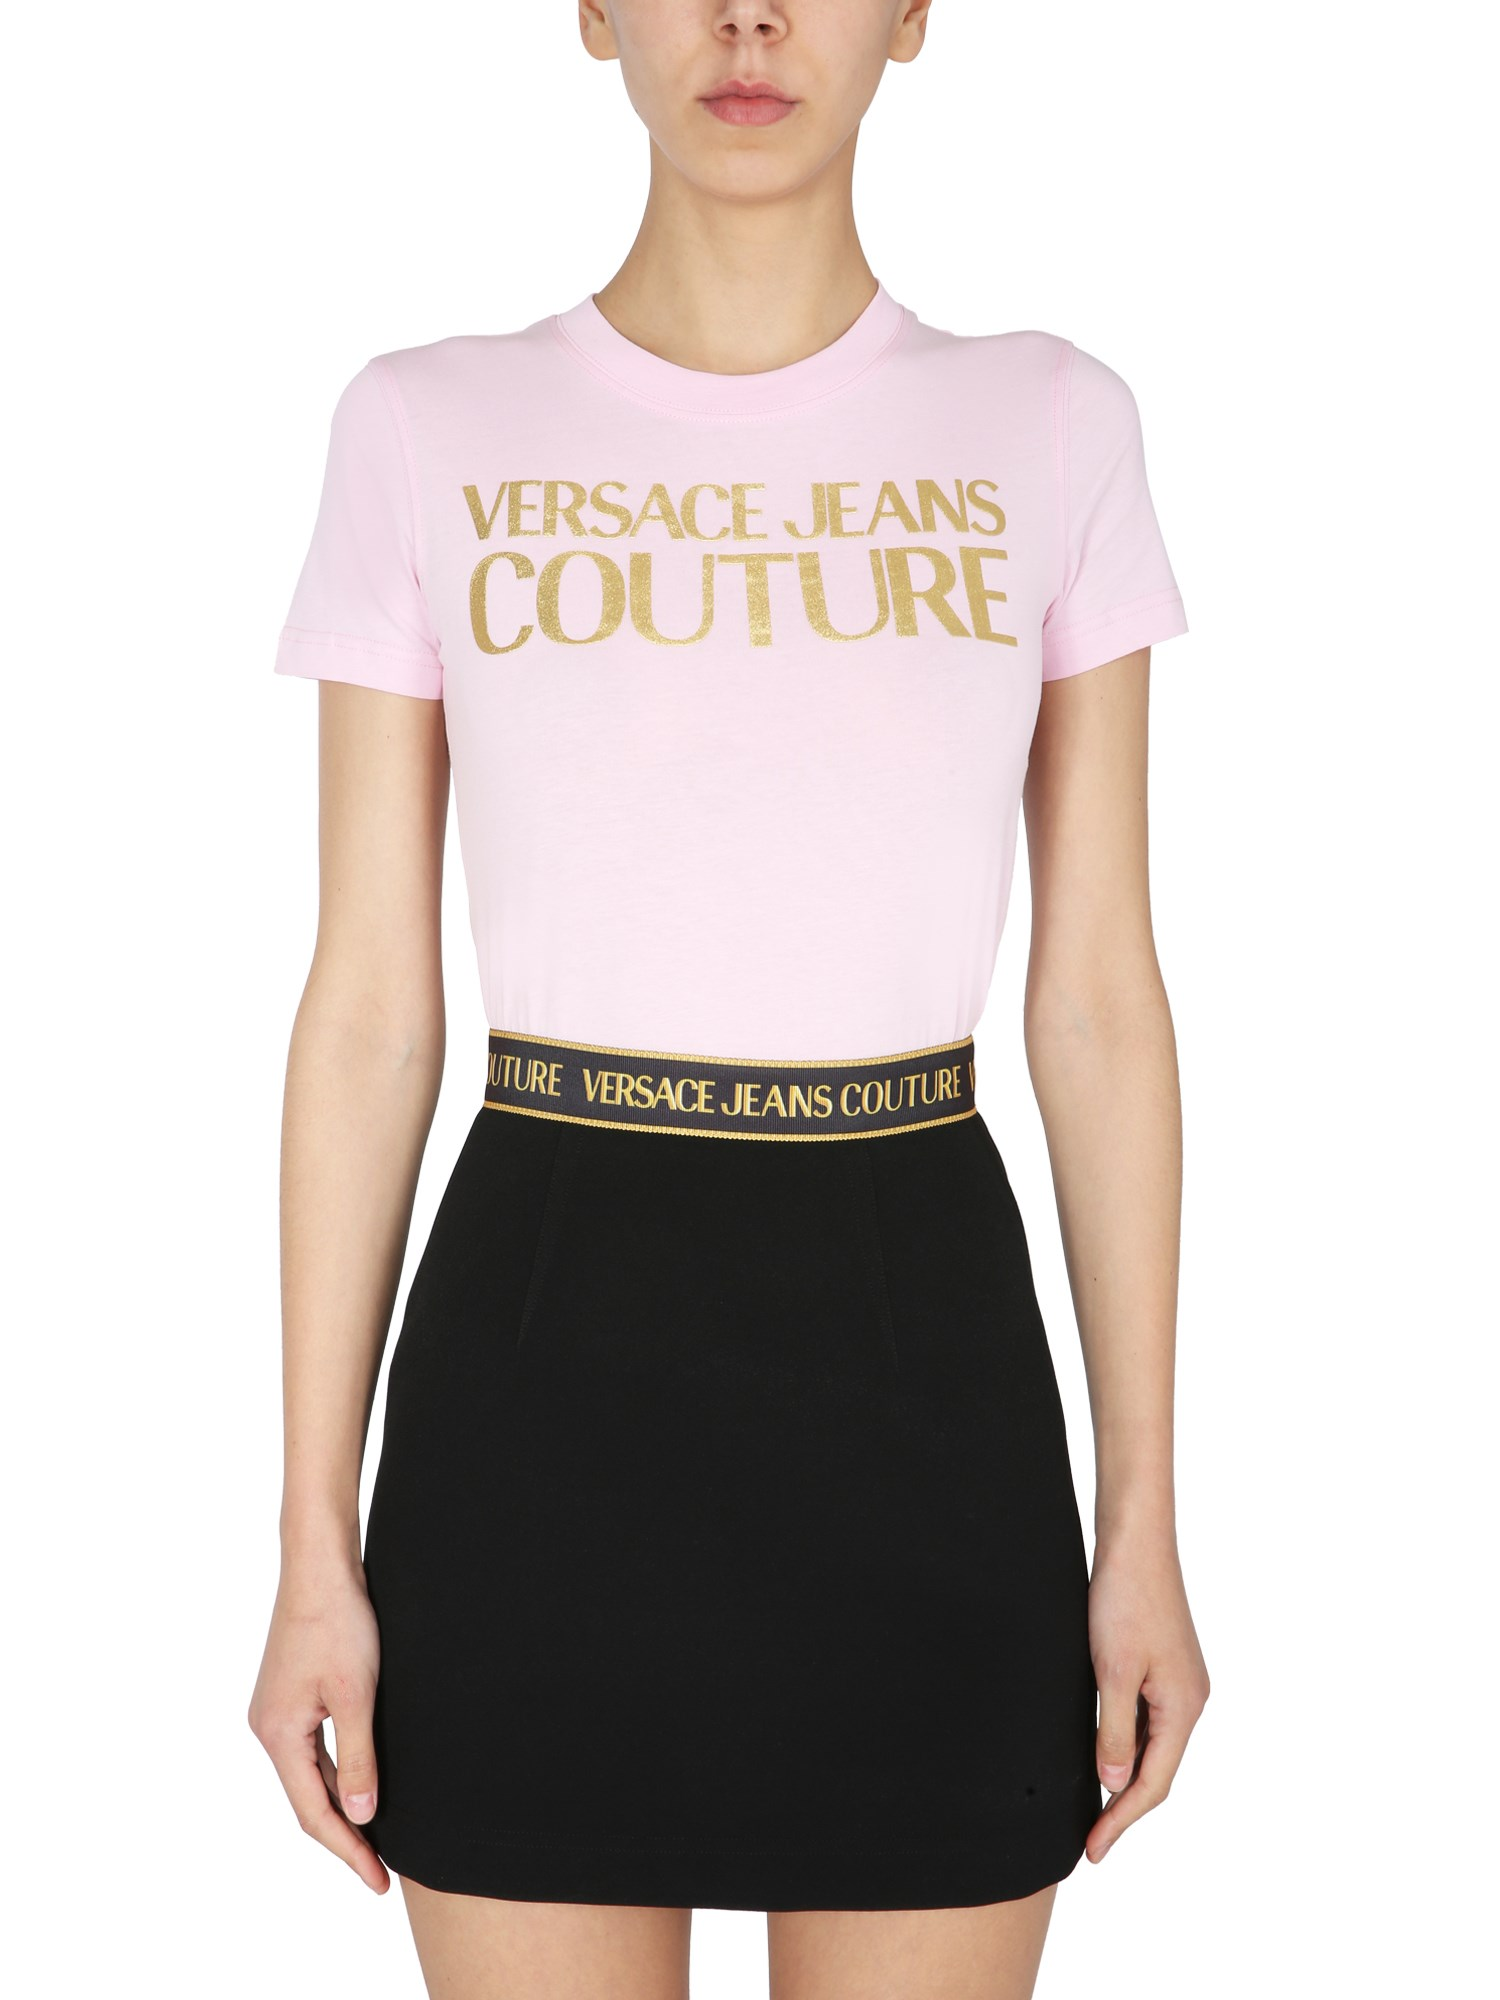 Versace Jeans Couture T-shirts T-SHIRT WITH METALLIC LOGO